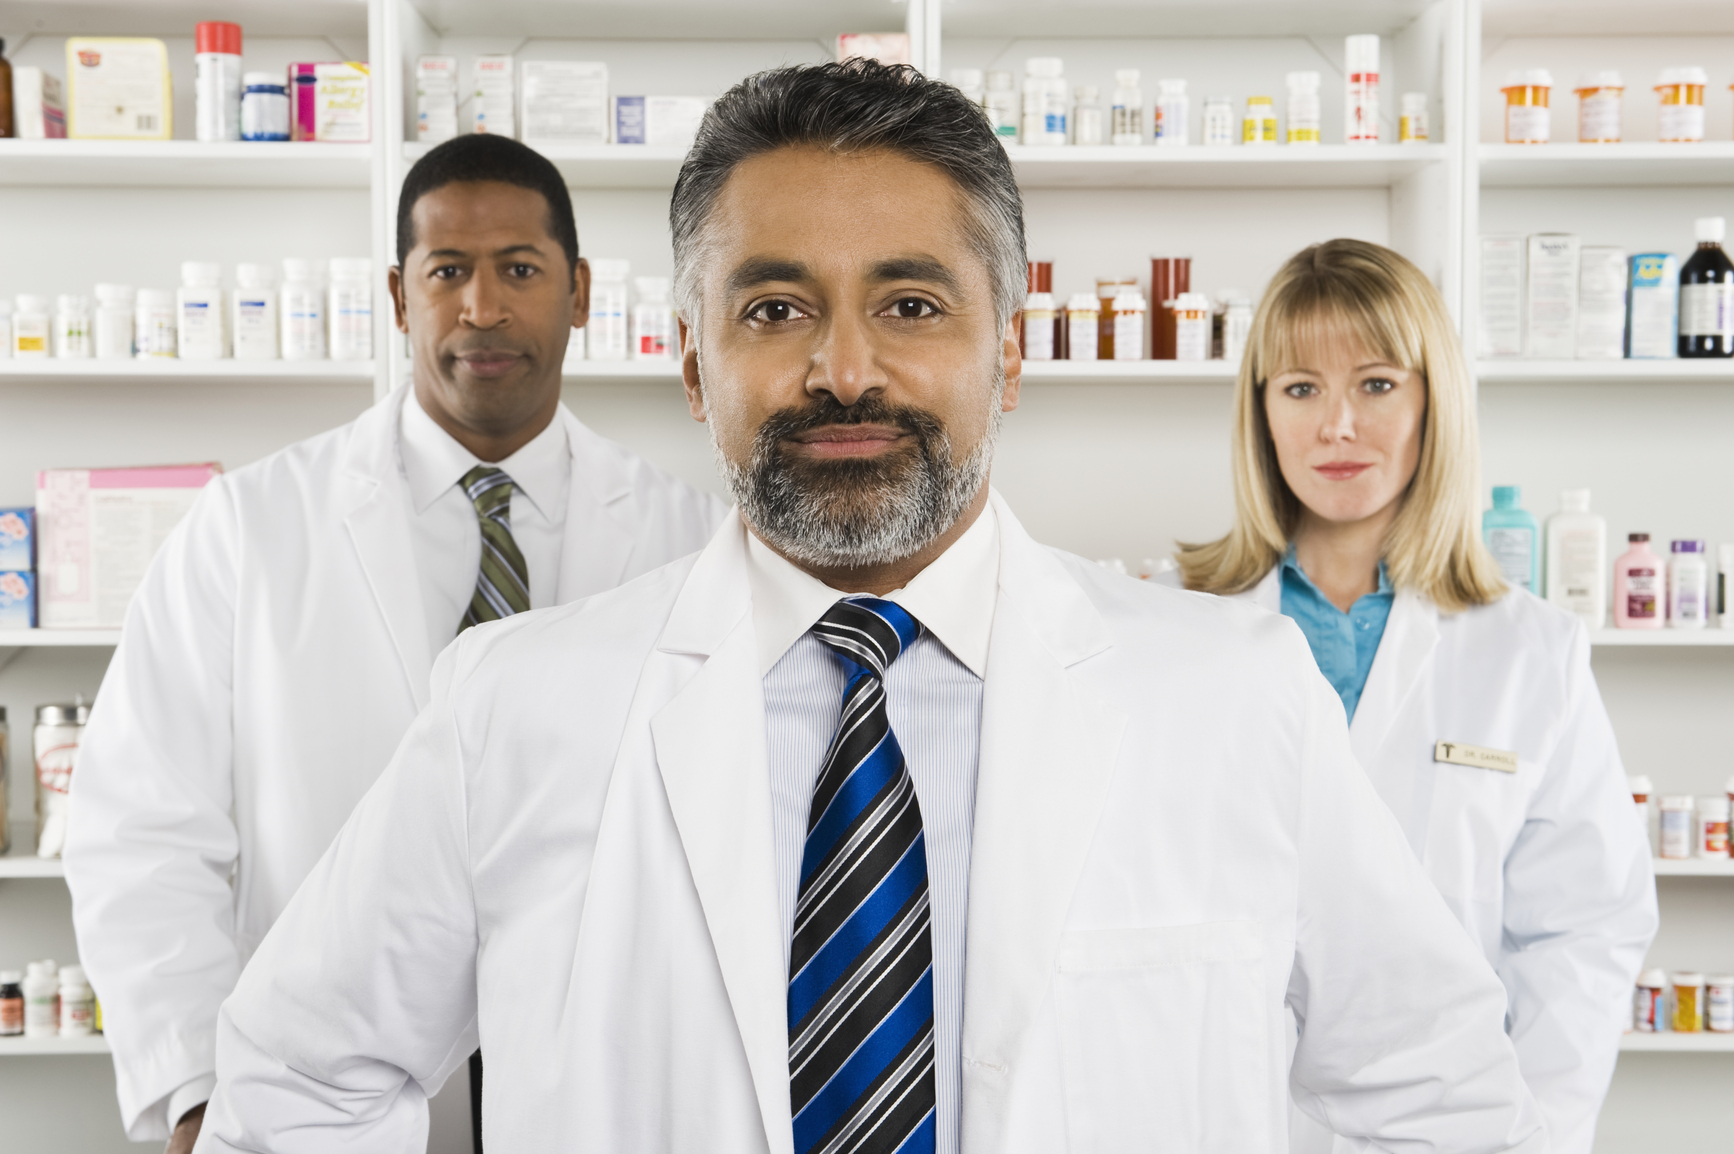 Pharmacentre is independently owned and operated by pharmacists committed to local community... Learn More »